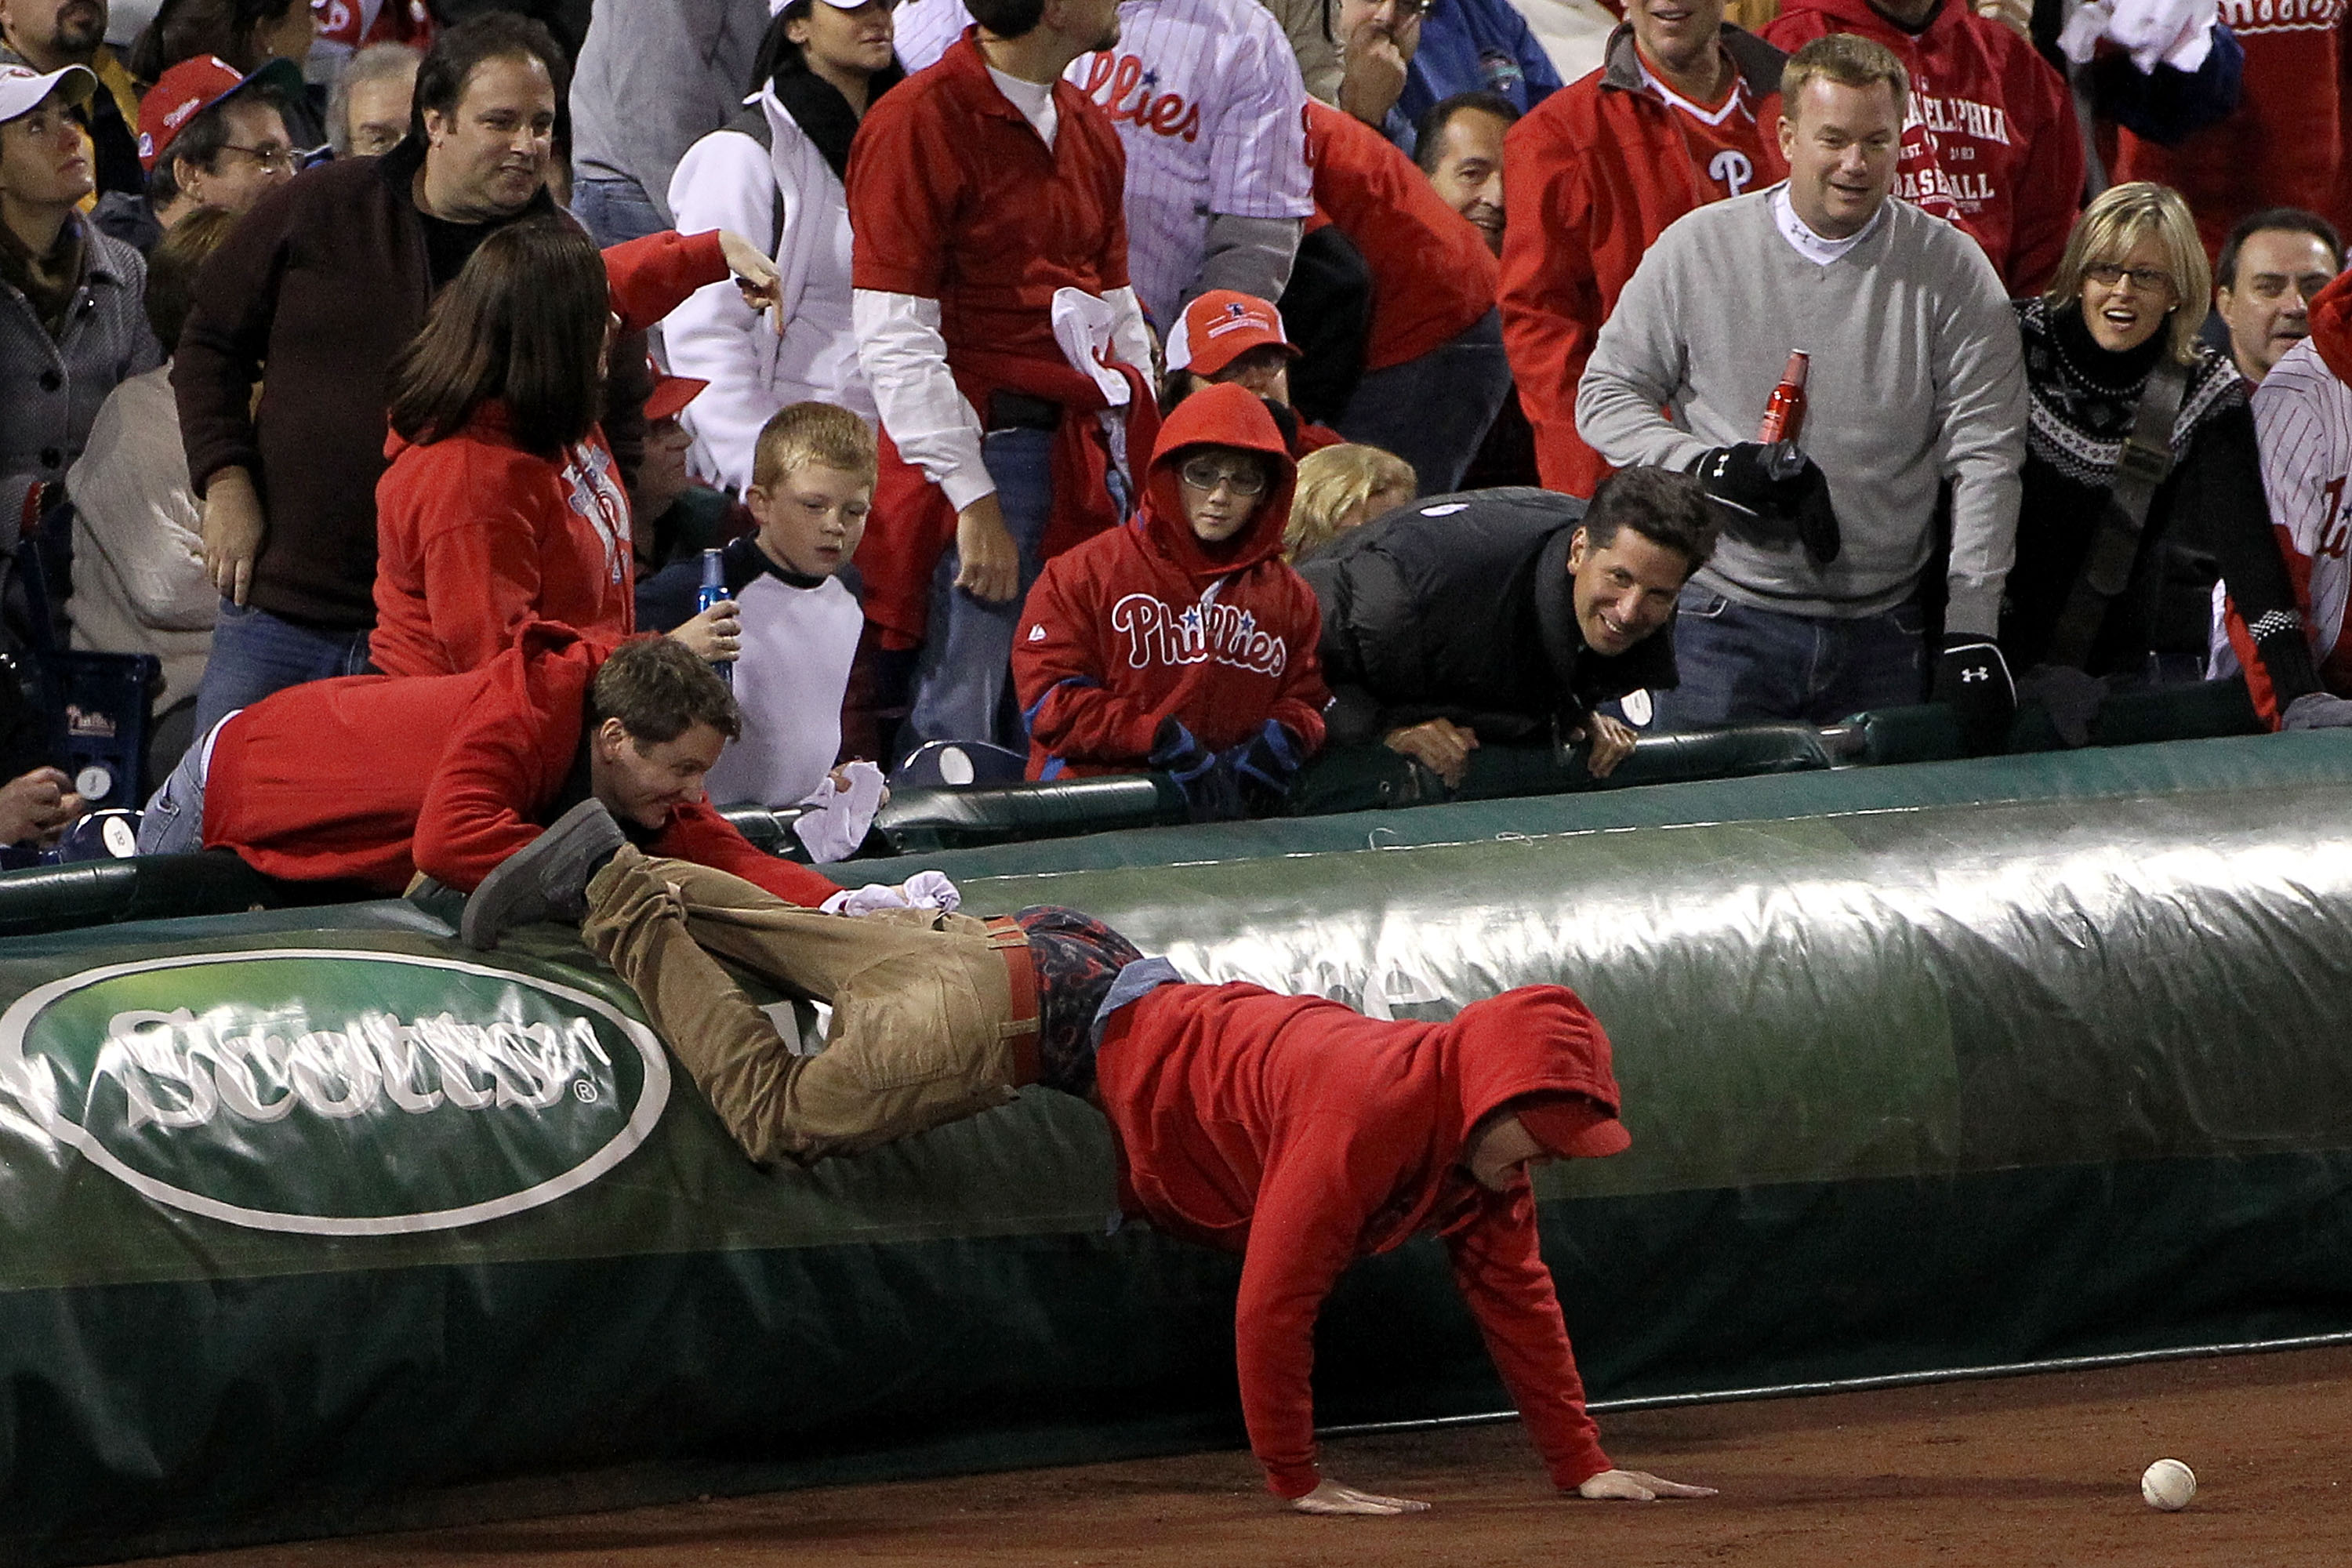 PHILADELPHIA - OCTOBER 16:  A fan goes after a foul ball in Game One of the NLCS during the 2010 MLB Playoffs between the San Francisco Giants and the Philadelphia Phillies at Citizens Bank Park on October 16, 2010 in Philadelphia, Pennsylvania.  (Photo b